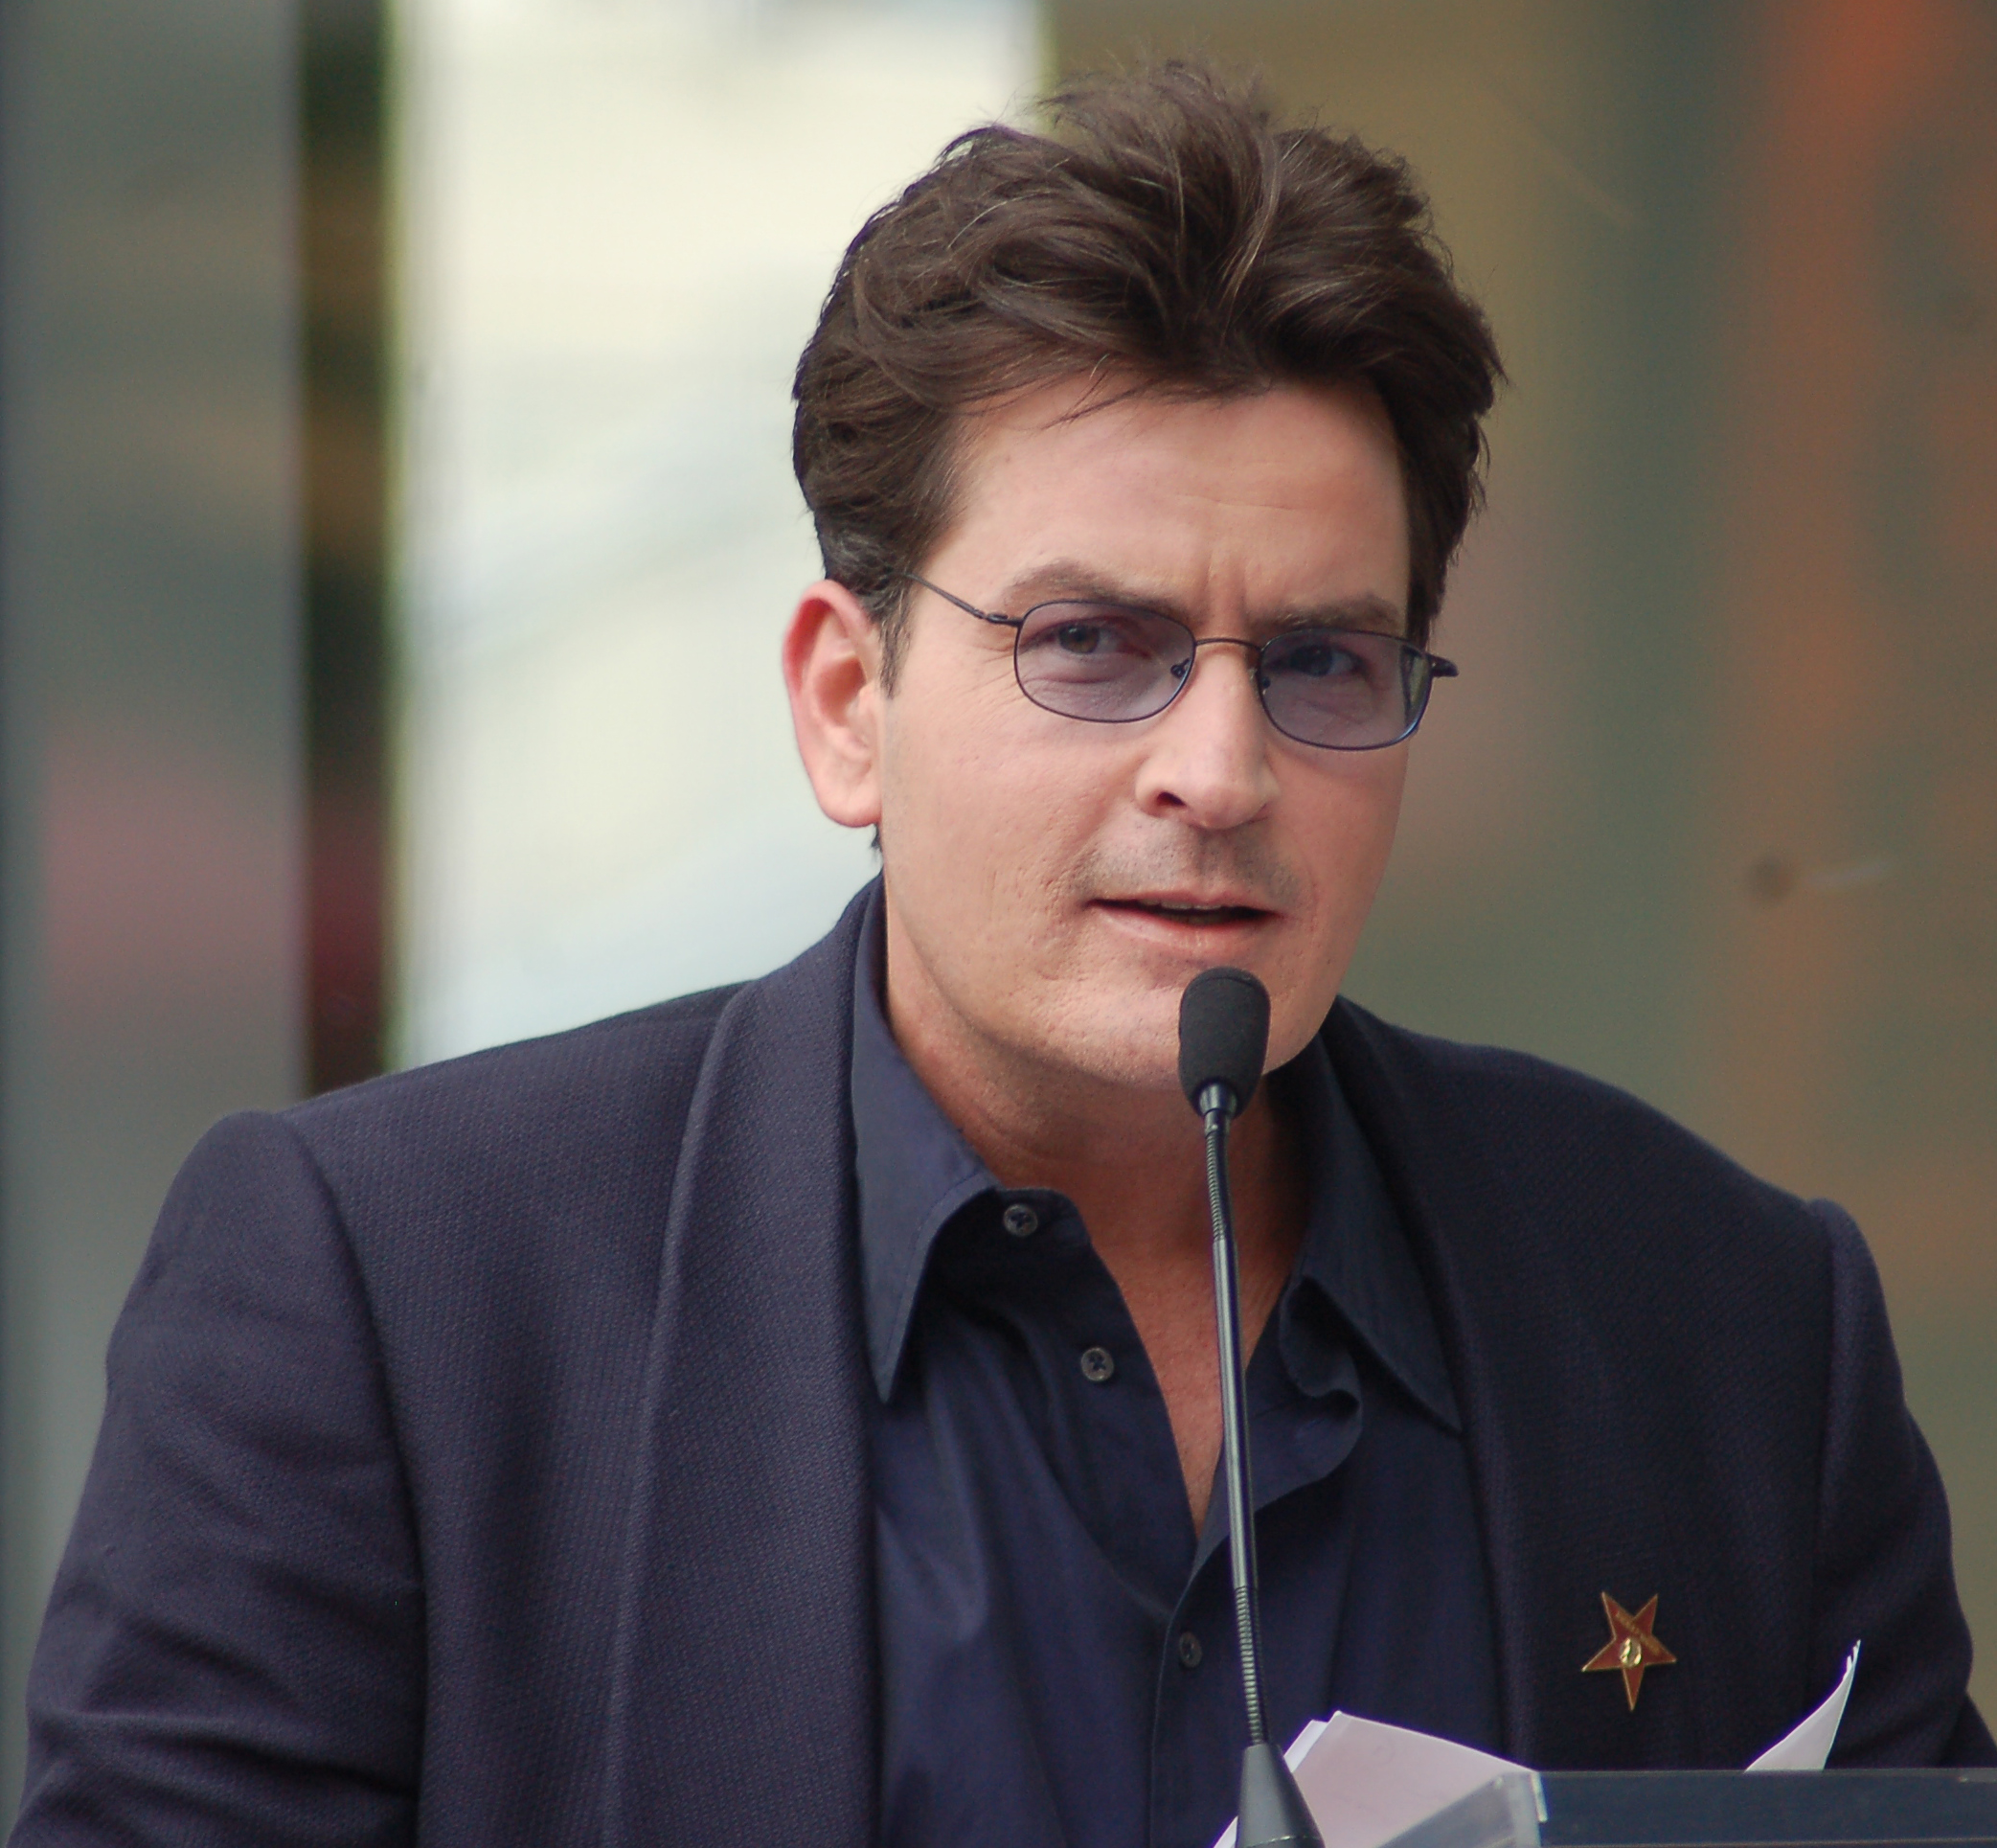 Charlie Sheen Intern Tweet Draws 74,040 Applications, Sets Twitter Record